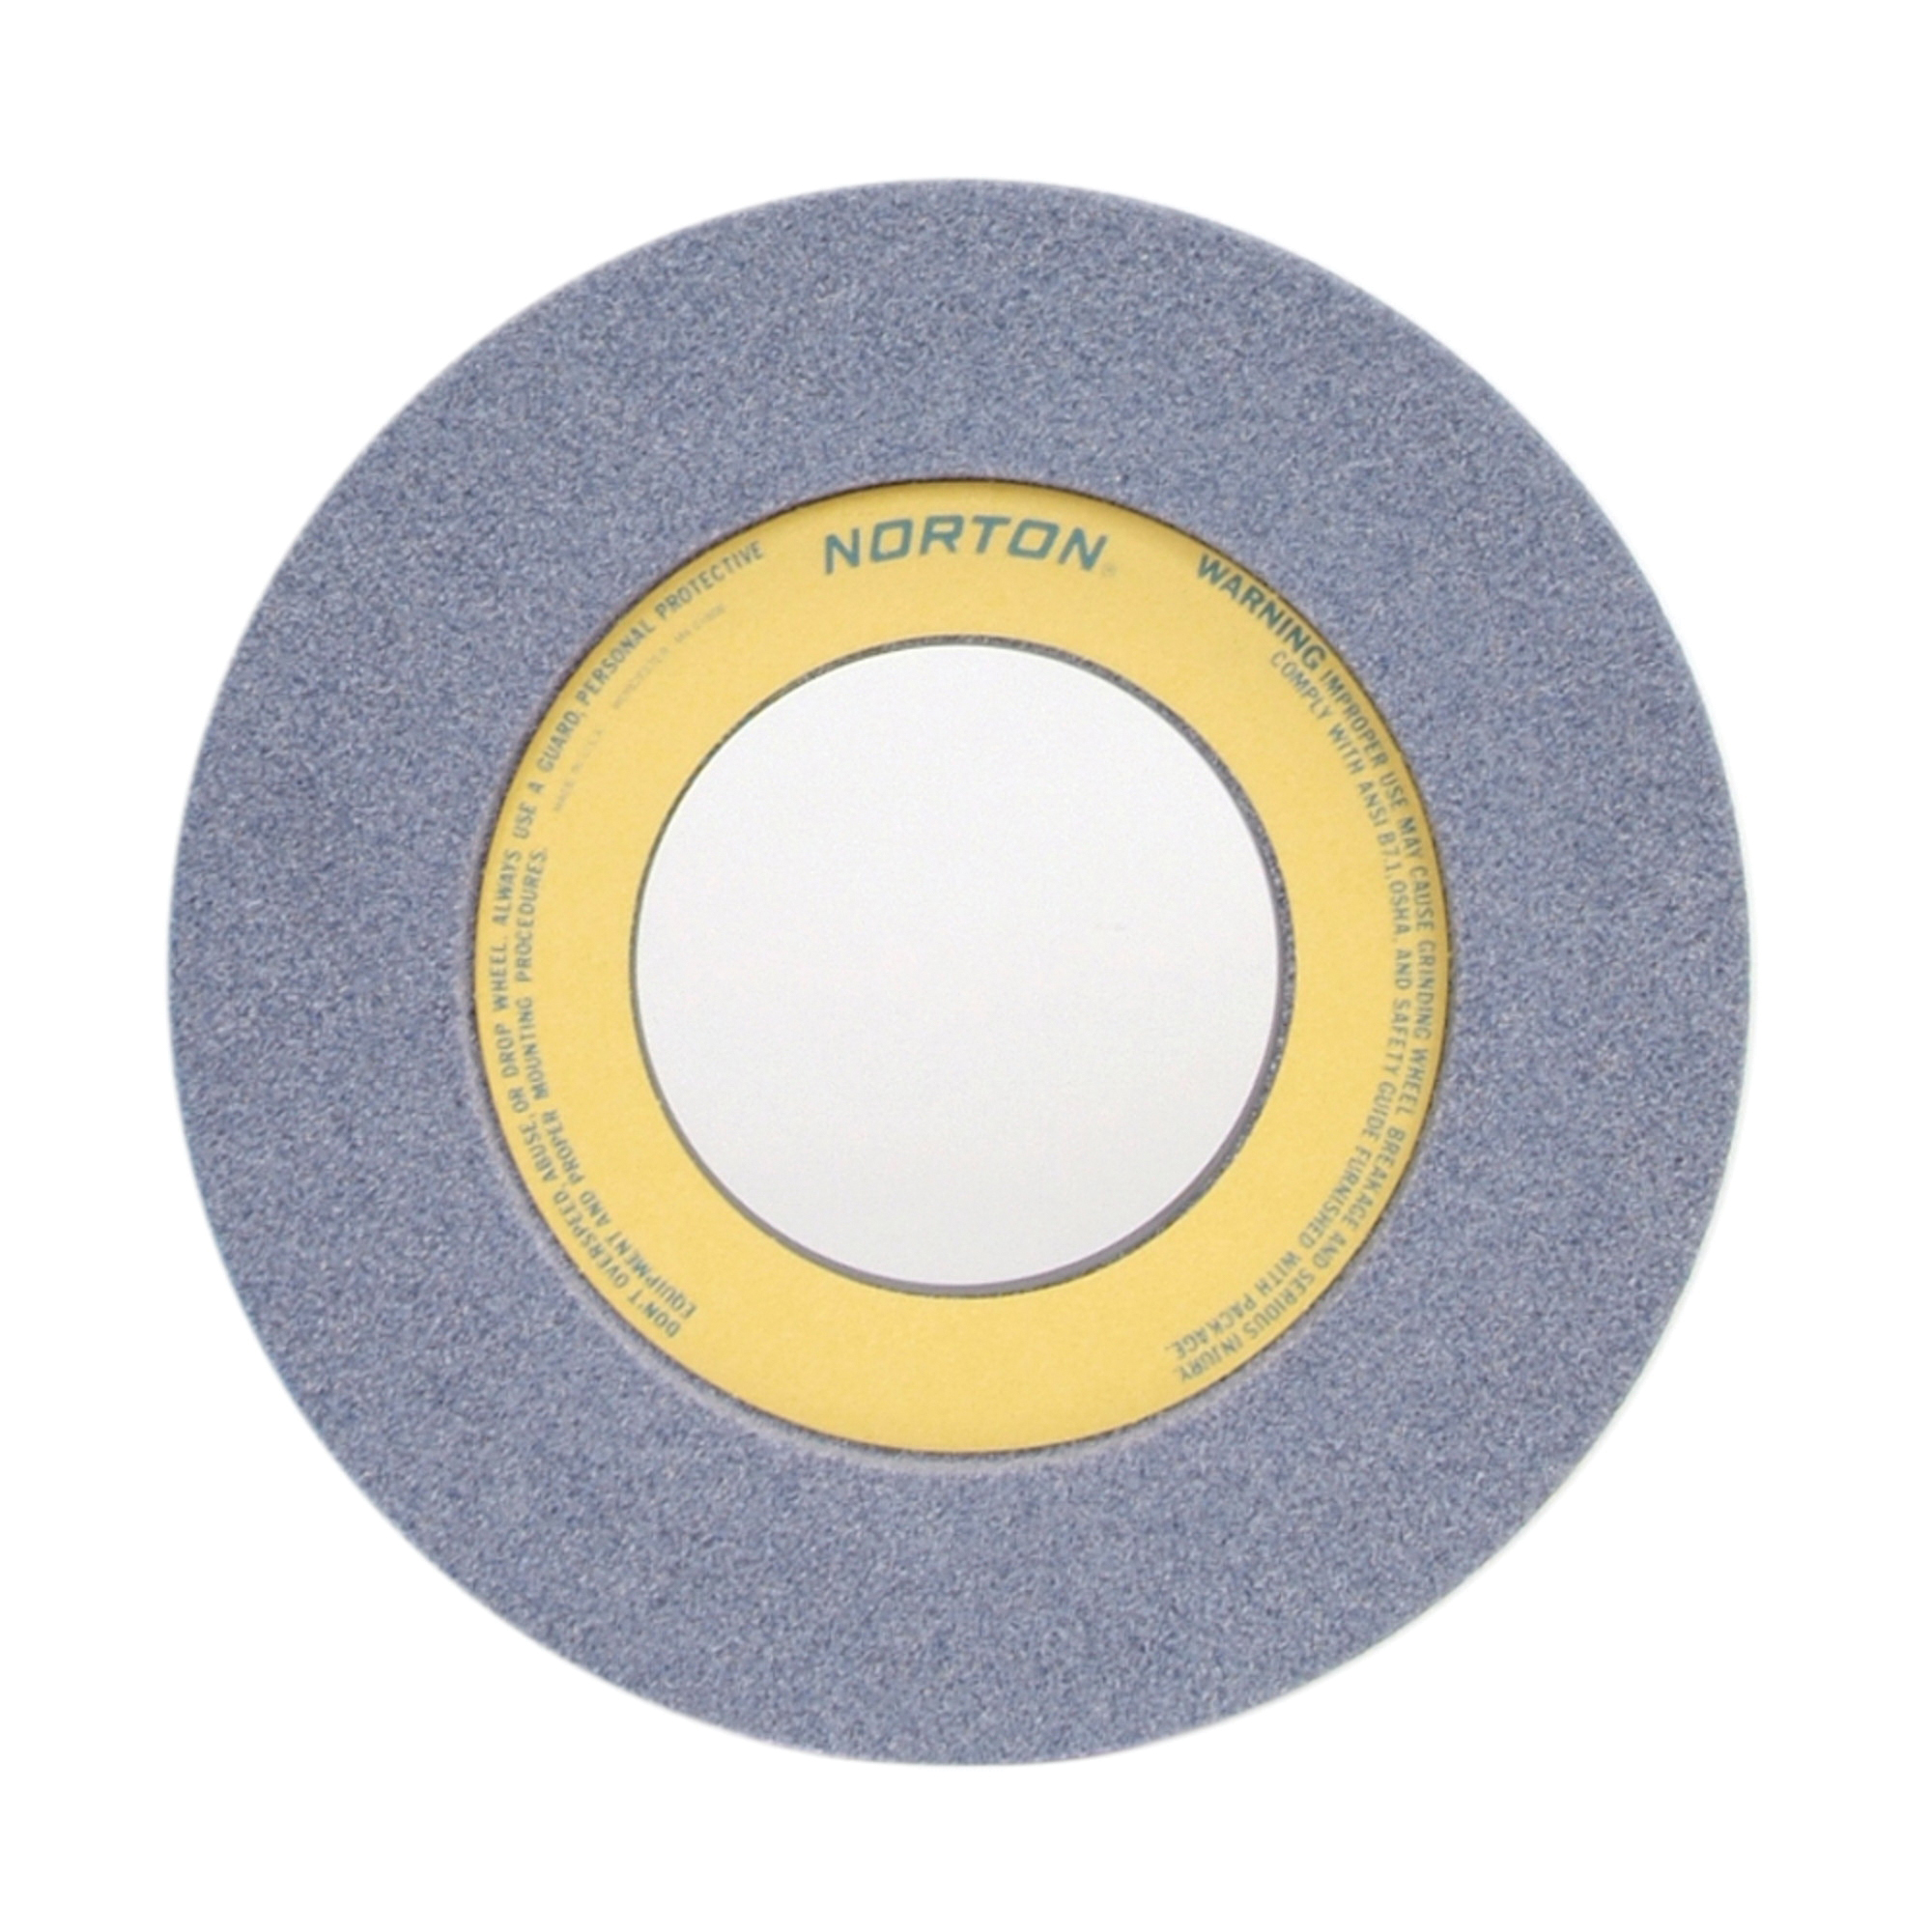 Norton® 66253263170 32A 1-Side Recessed Toolroom Wheel, 12 in Dia x 1-1/2 in THK, 5 in Center Hole, 46 Grit, Aluminum Oxide Abrasive